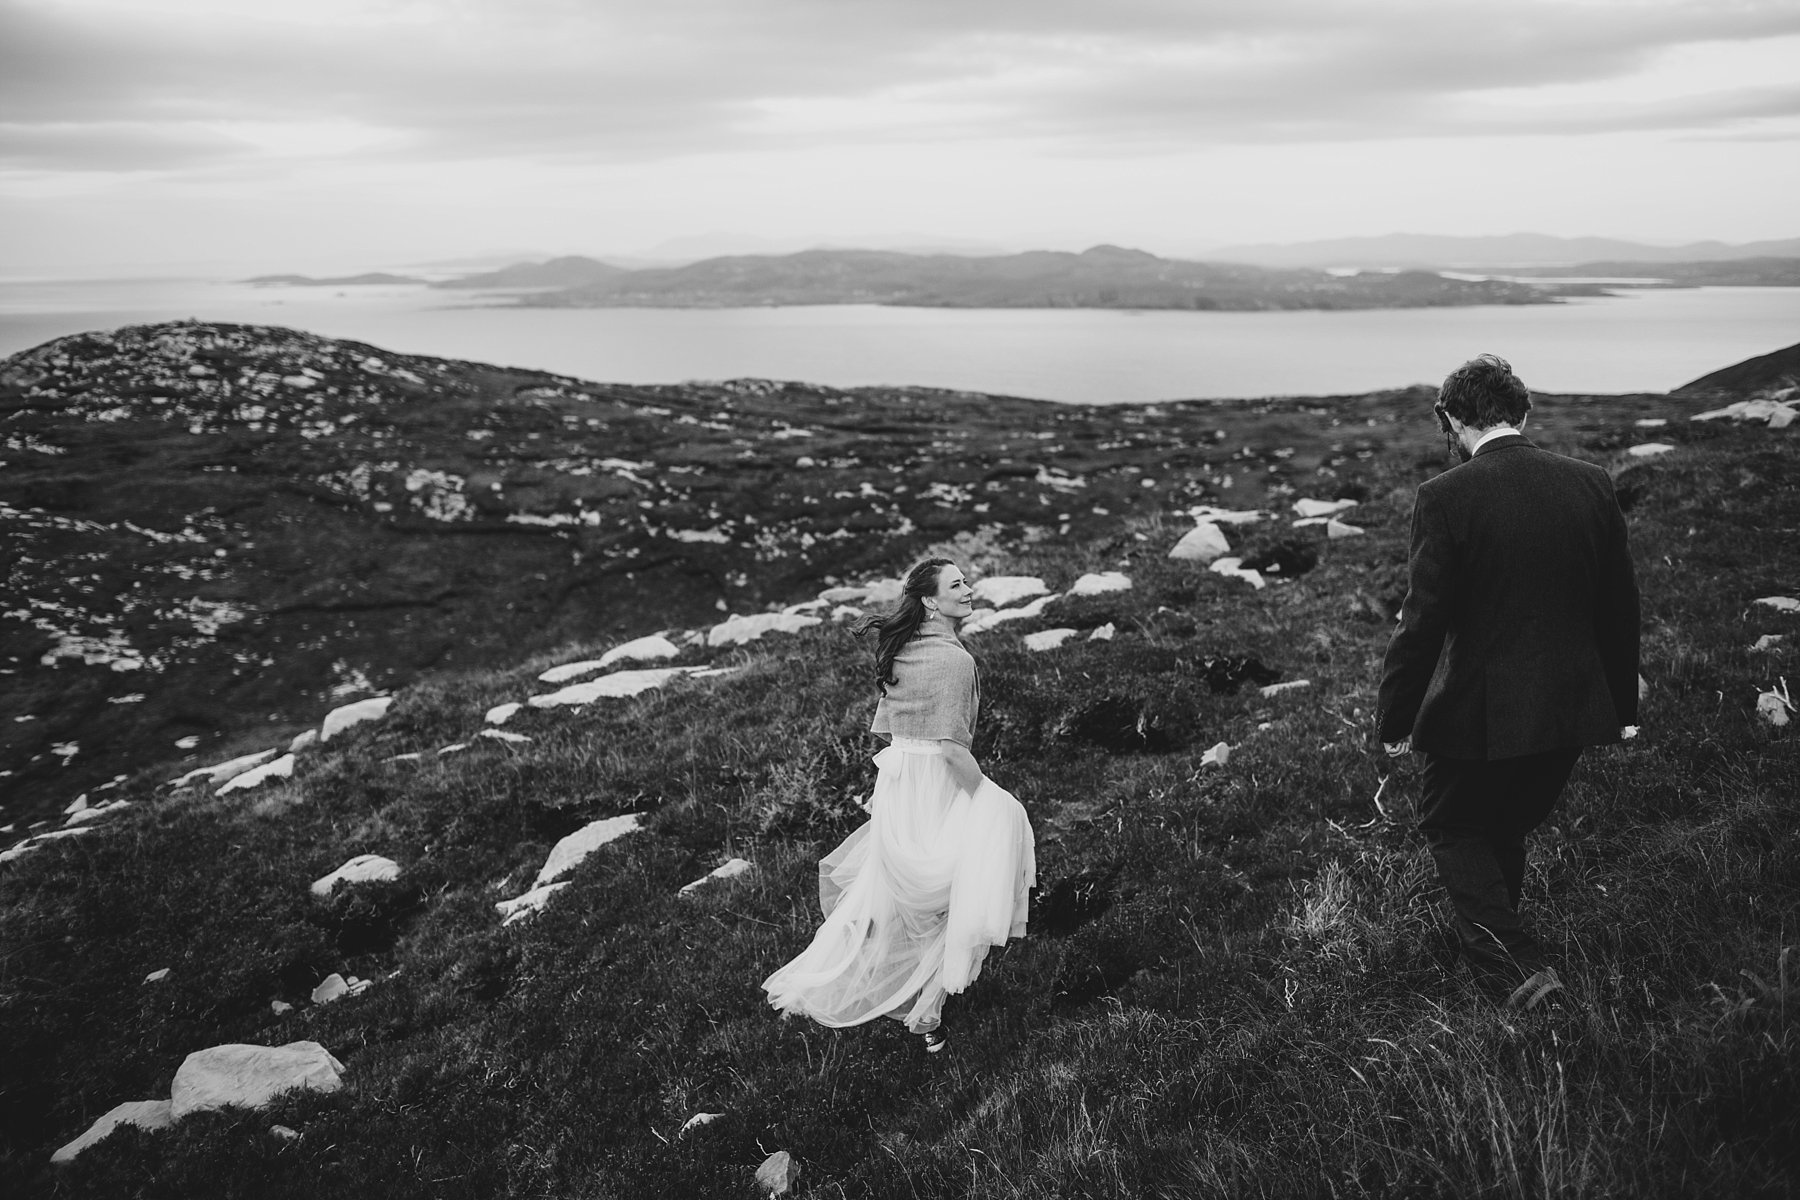 hornhead_donegak_elopement_weddings_0088